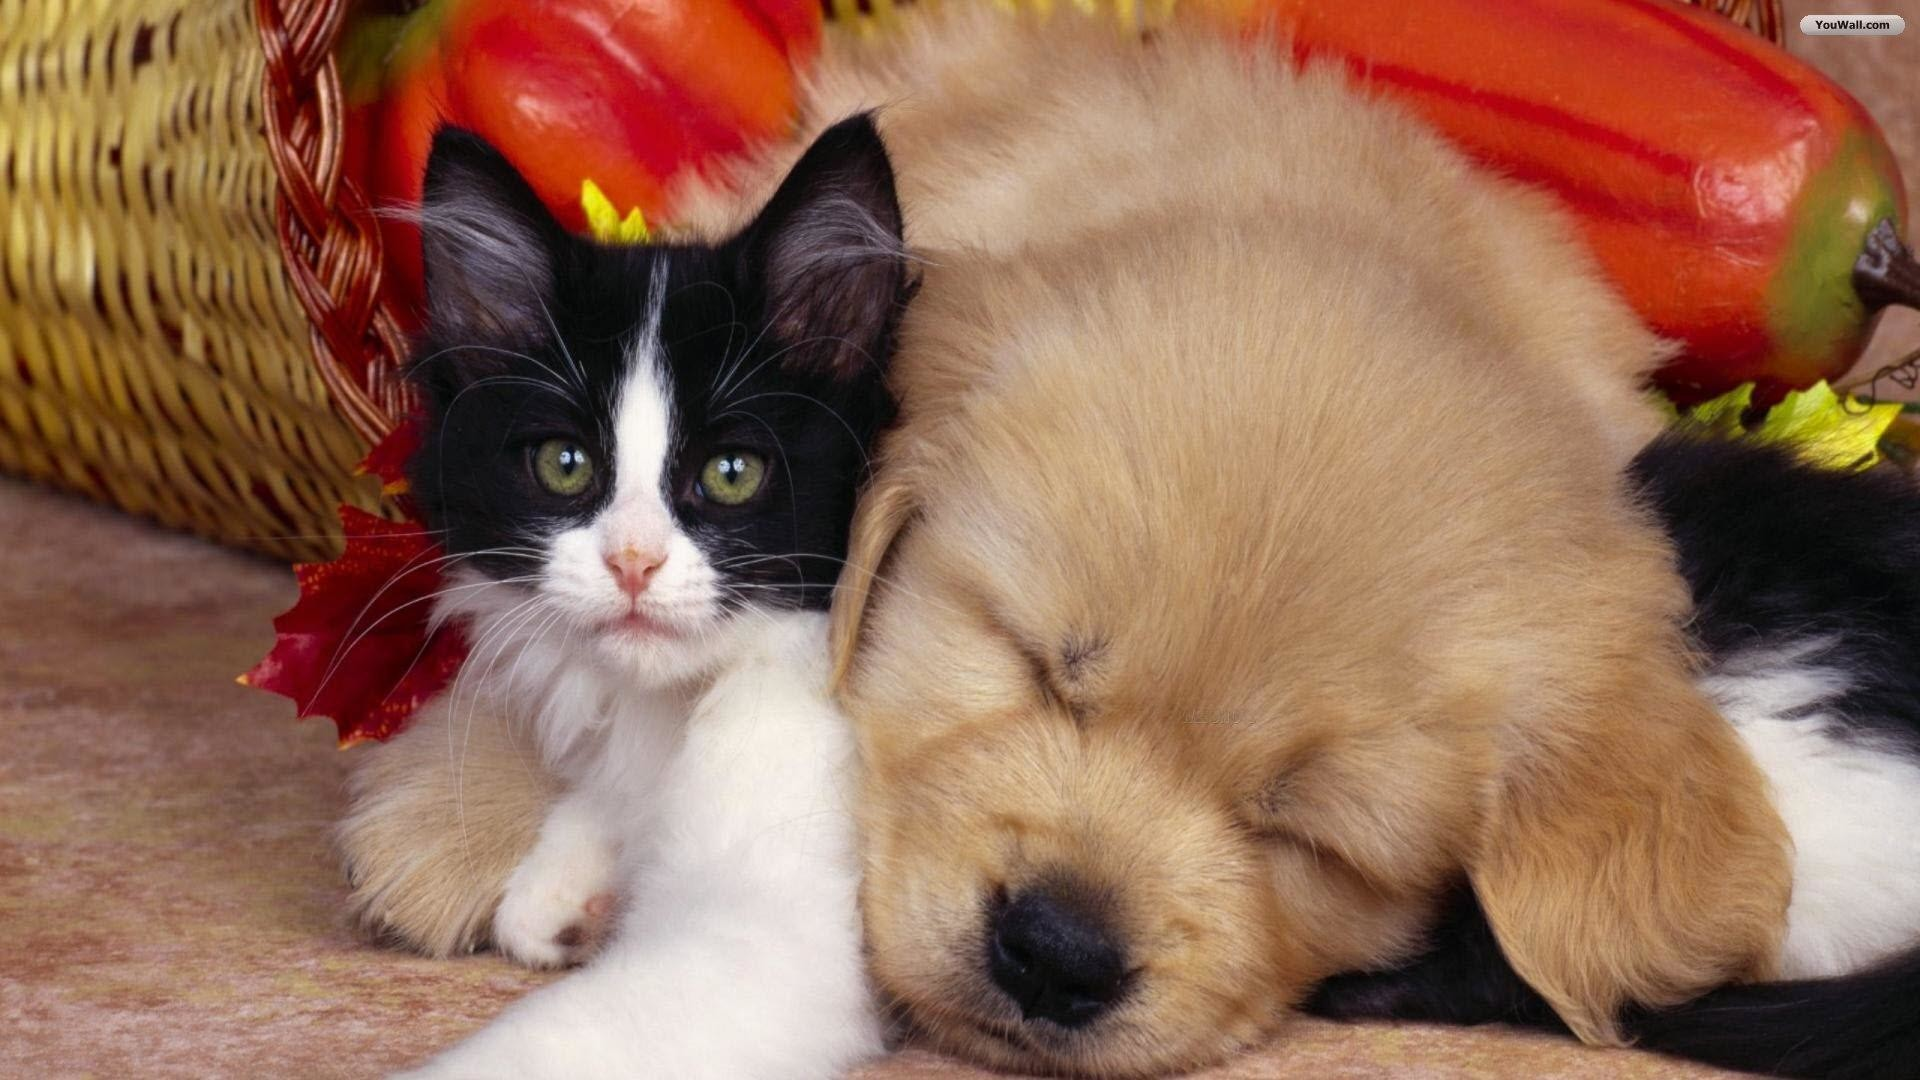 1920x1080 Cute-cat-and-dog-wallpaper